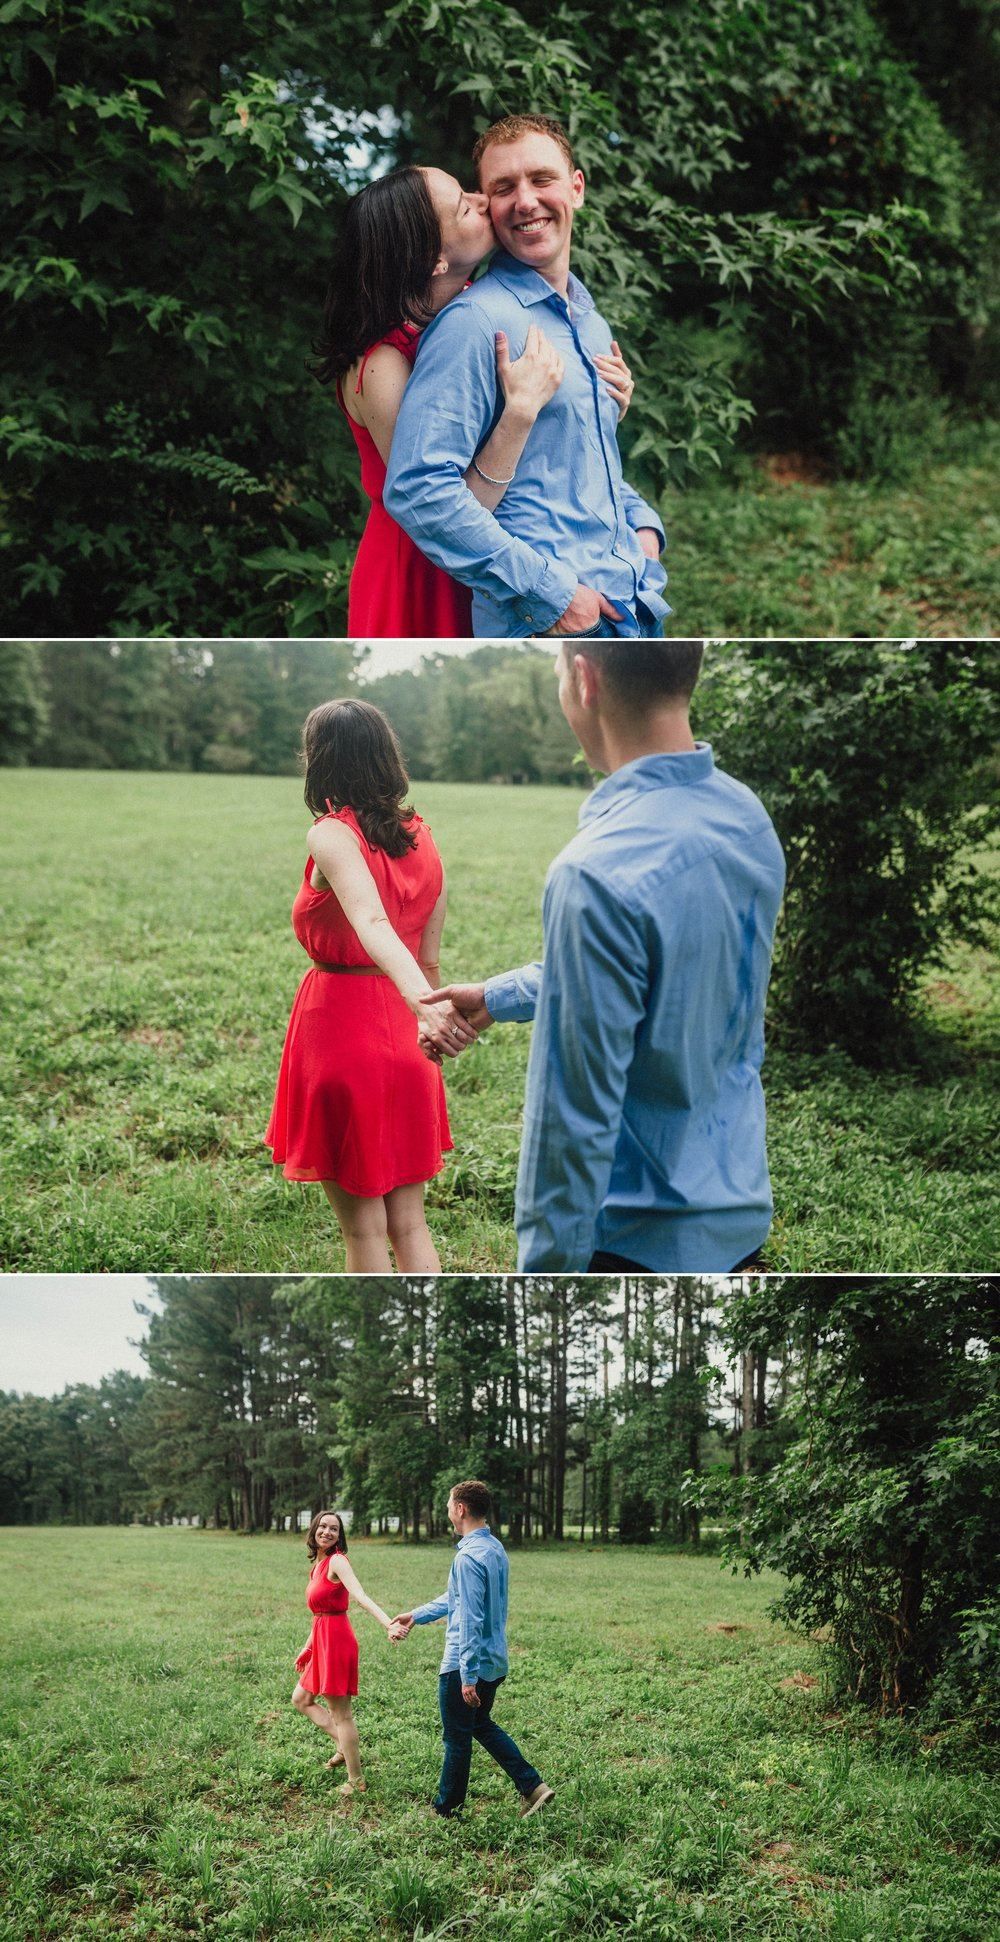 Sarah + Kyle - Engagement Photography Session in Fayetteville, North carolina 7.jpg